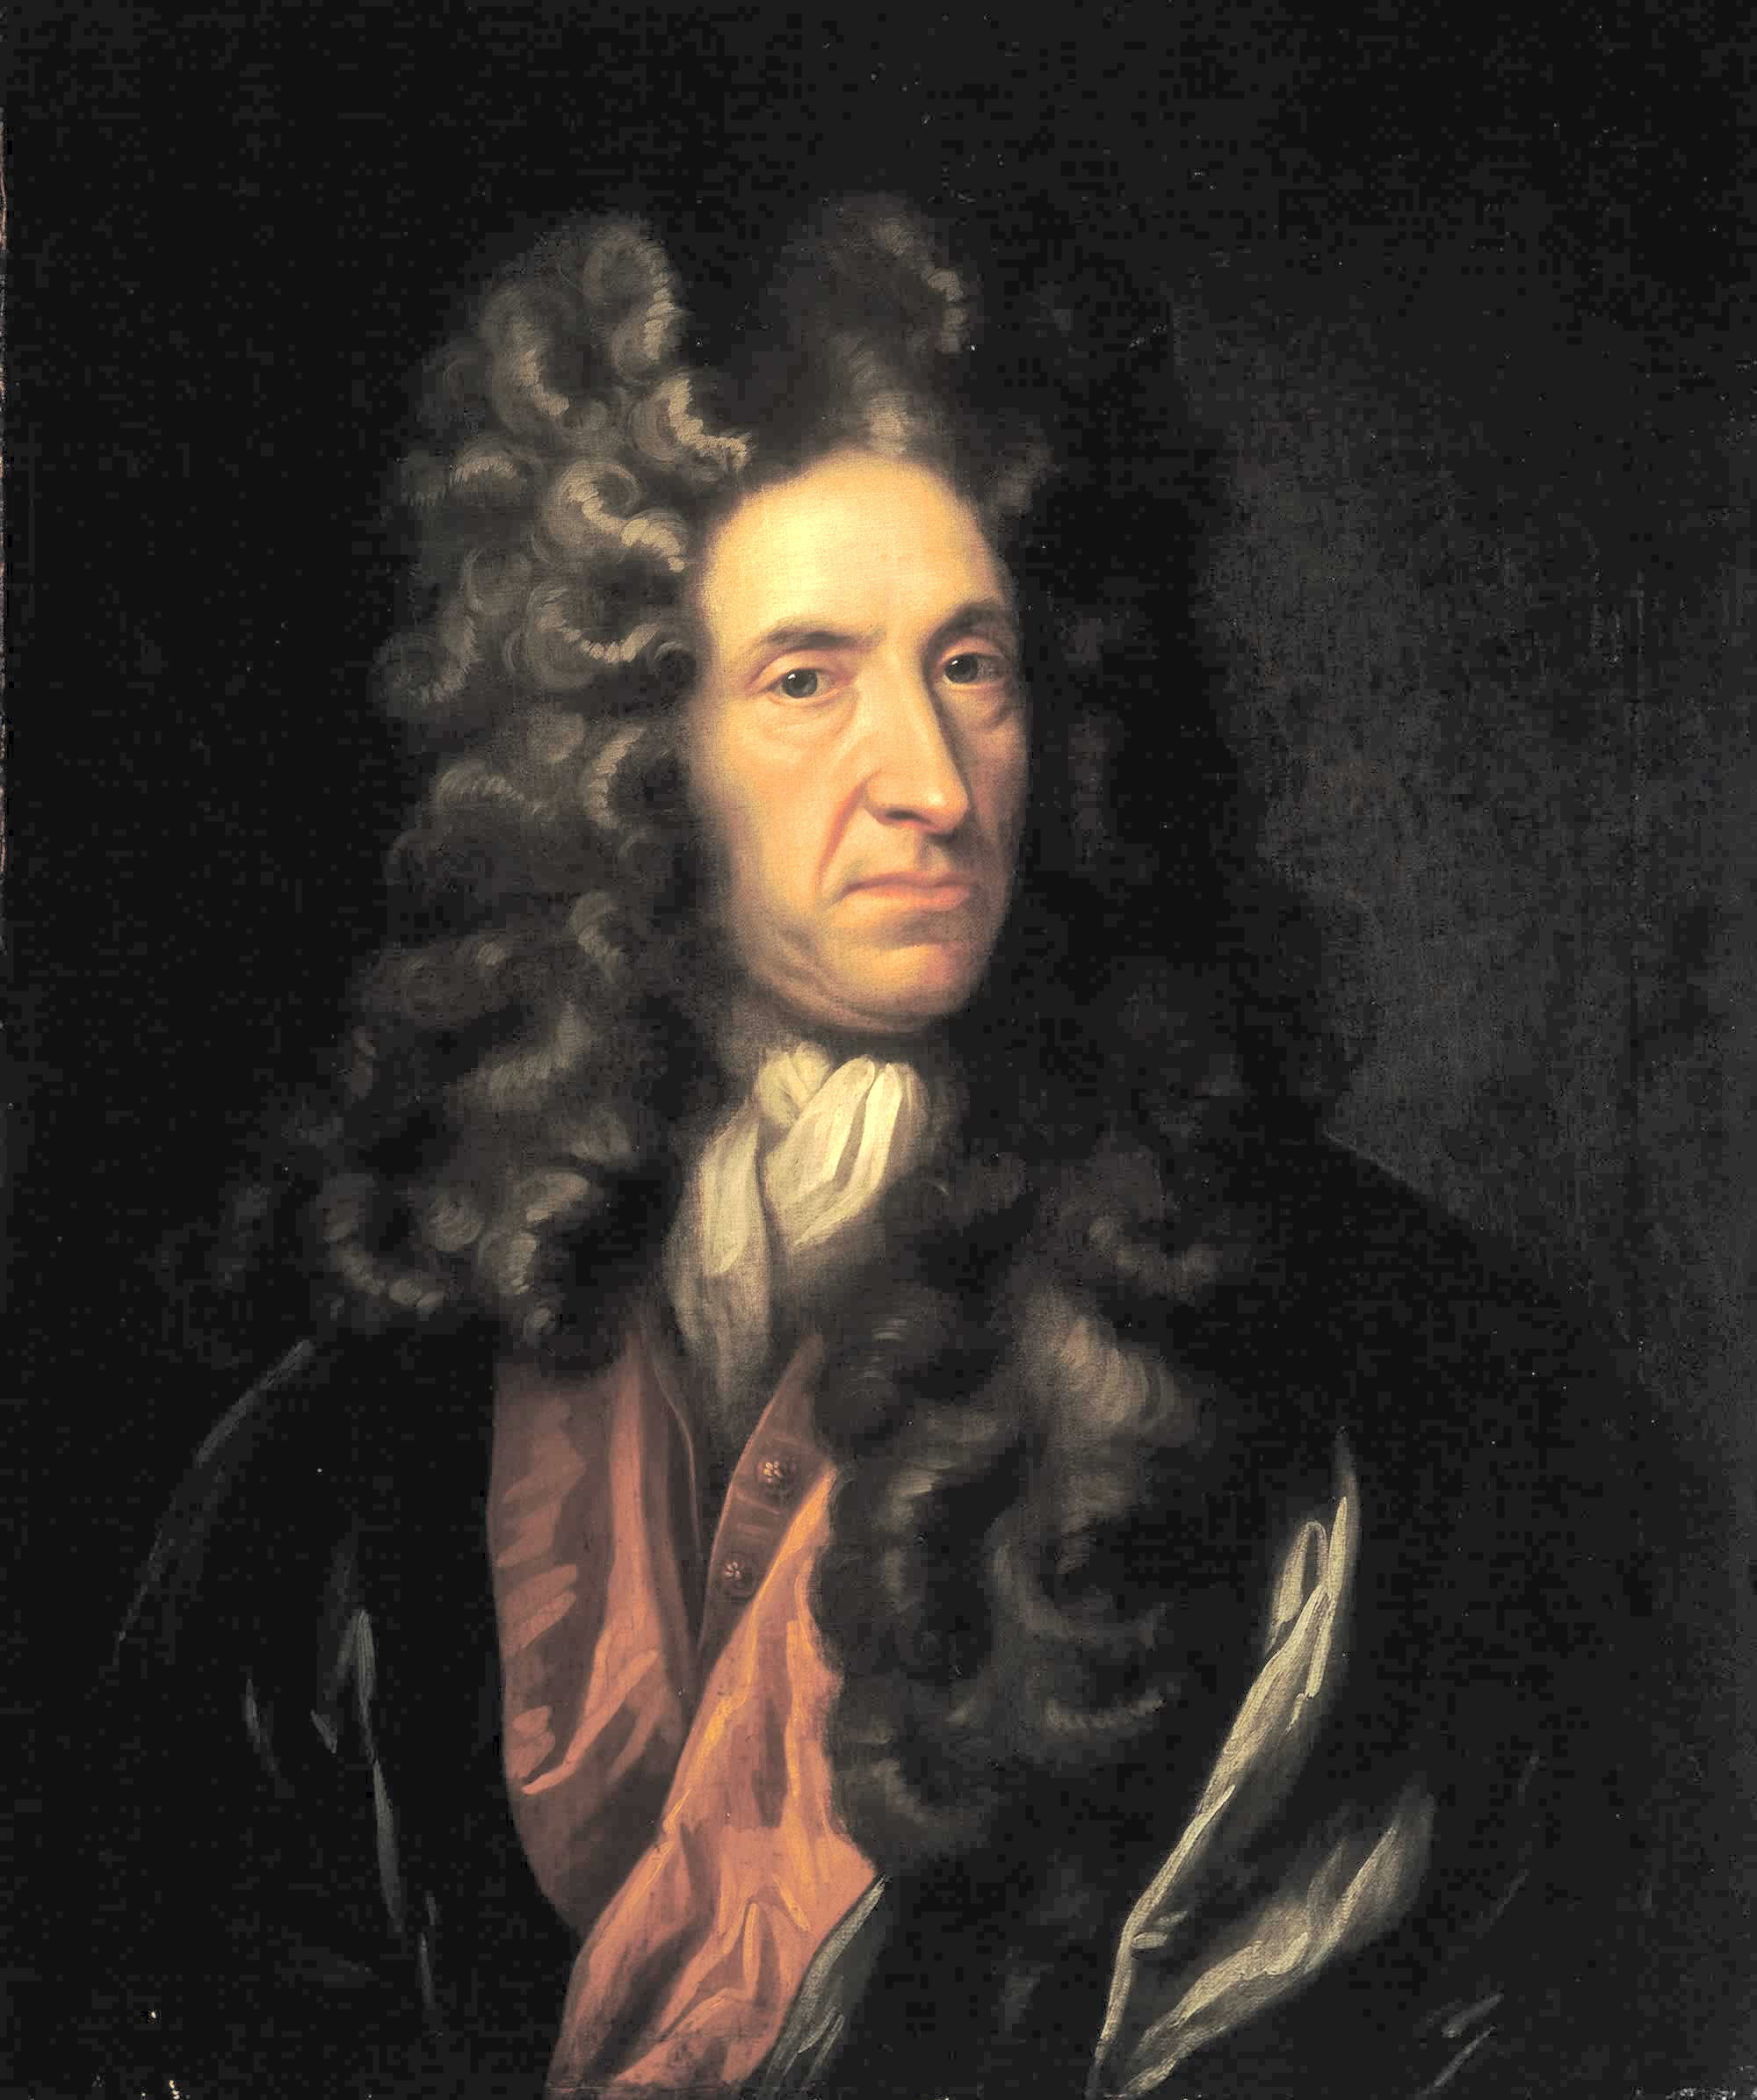 A 1722 book by Daniel Defoe is suddenly hot reading again, and it's one of many available free online. (portrait of Defoe: date and painter unknown, National Maritime Museum, London)